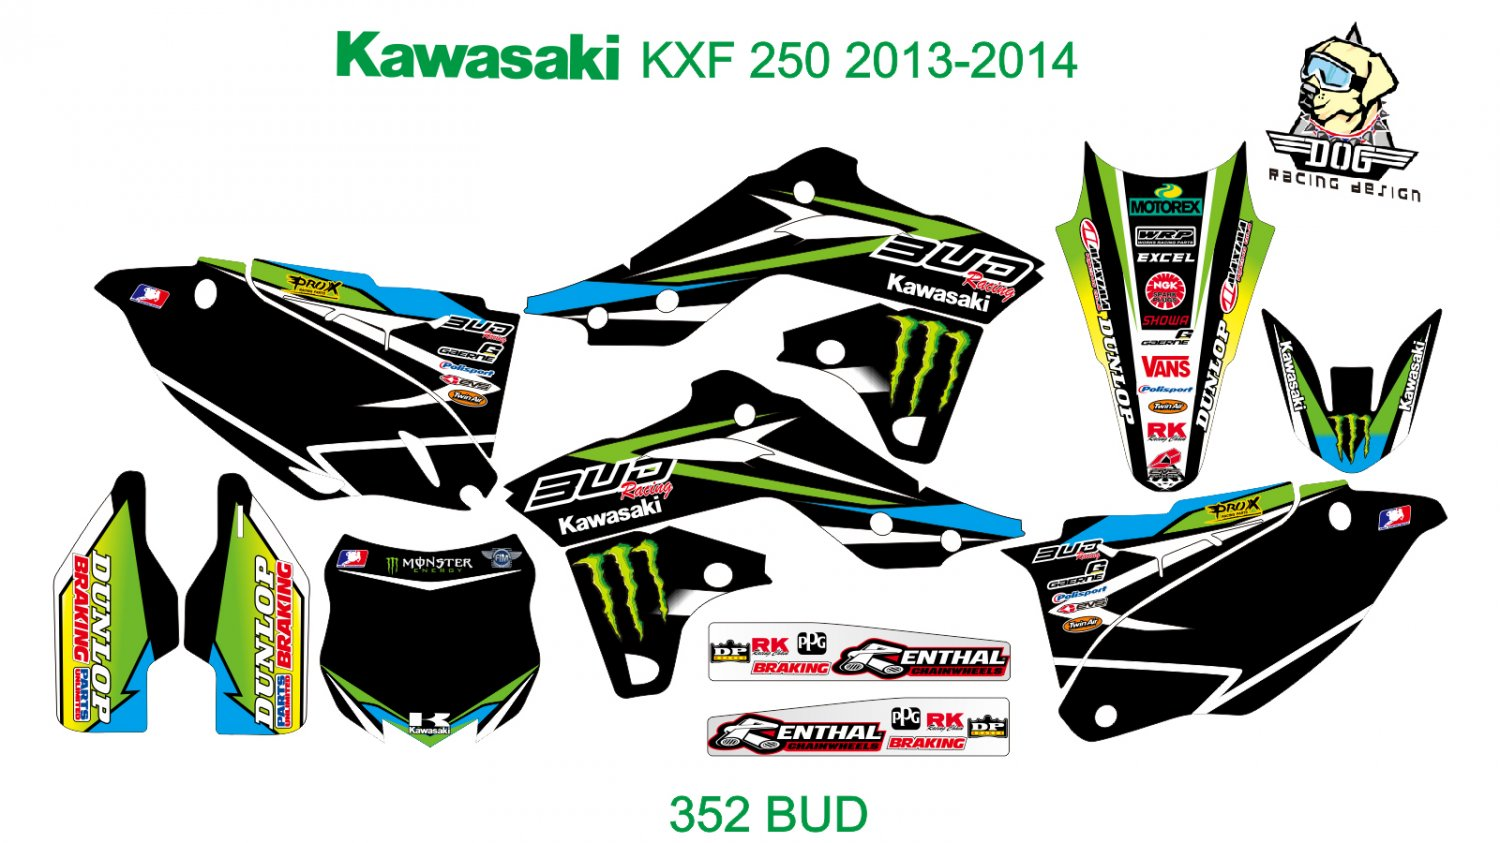 KAWASAKI KXF 250 2013-2014 GRAPHIC DECAL KIT CODE.352